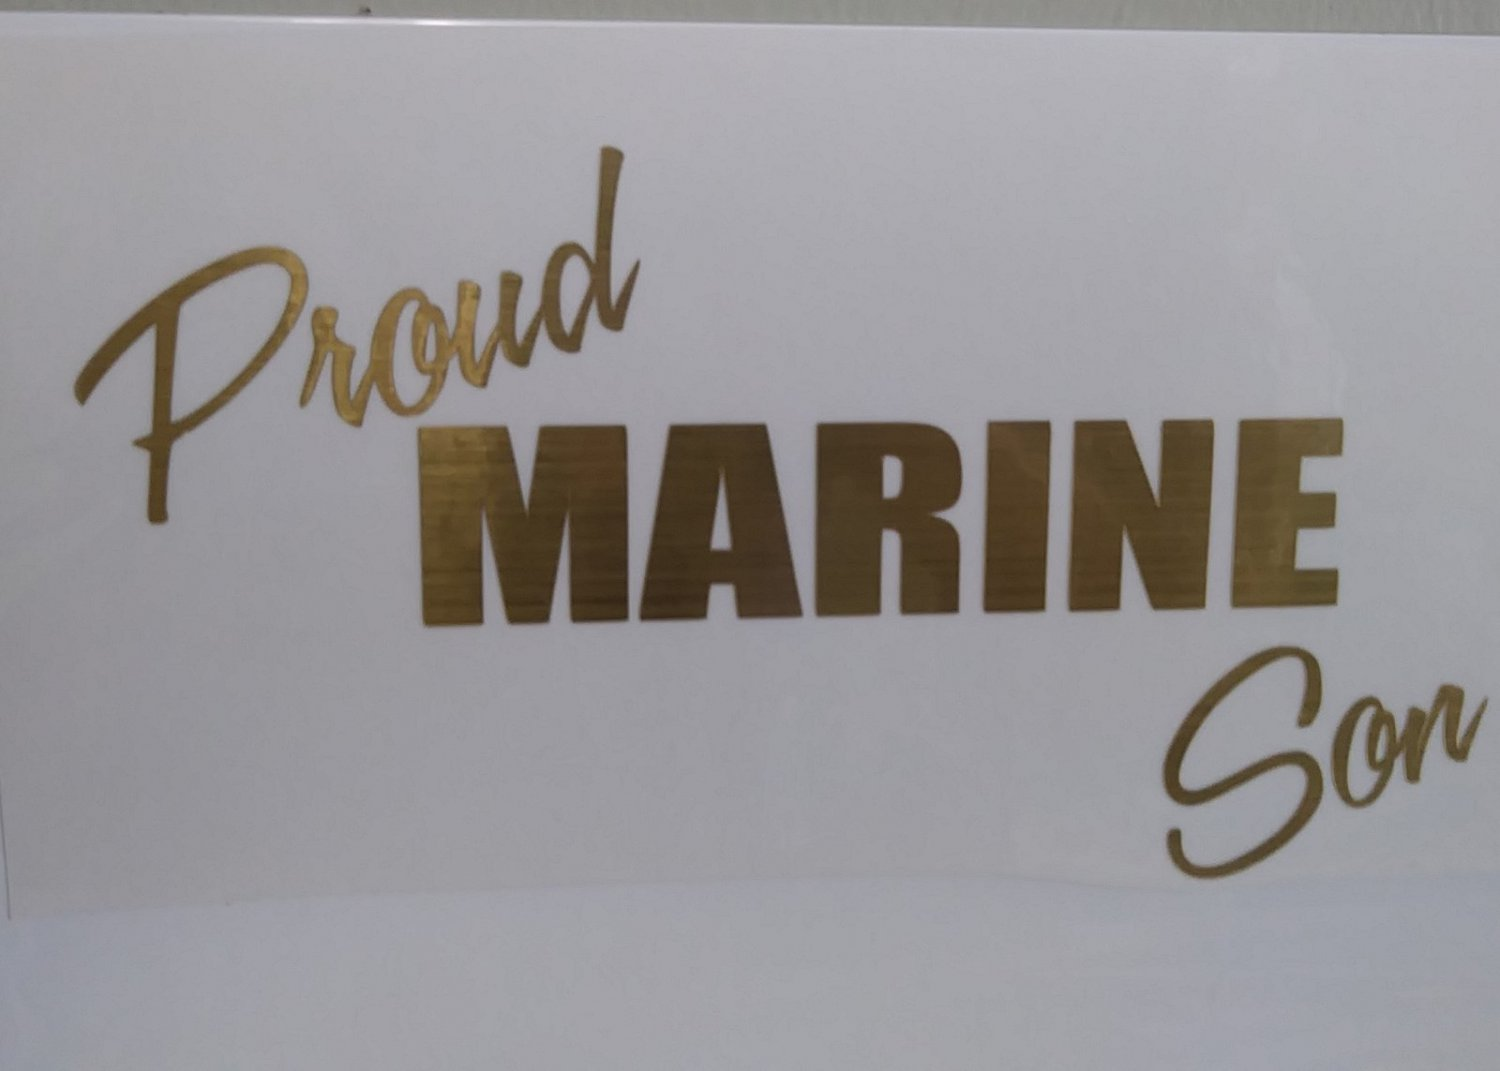 Brushed Gold Proud Marine Son Military Vinyl Car Window Decal